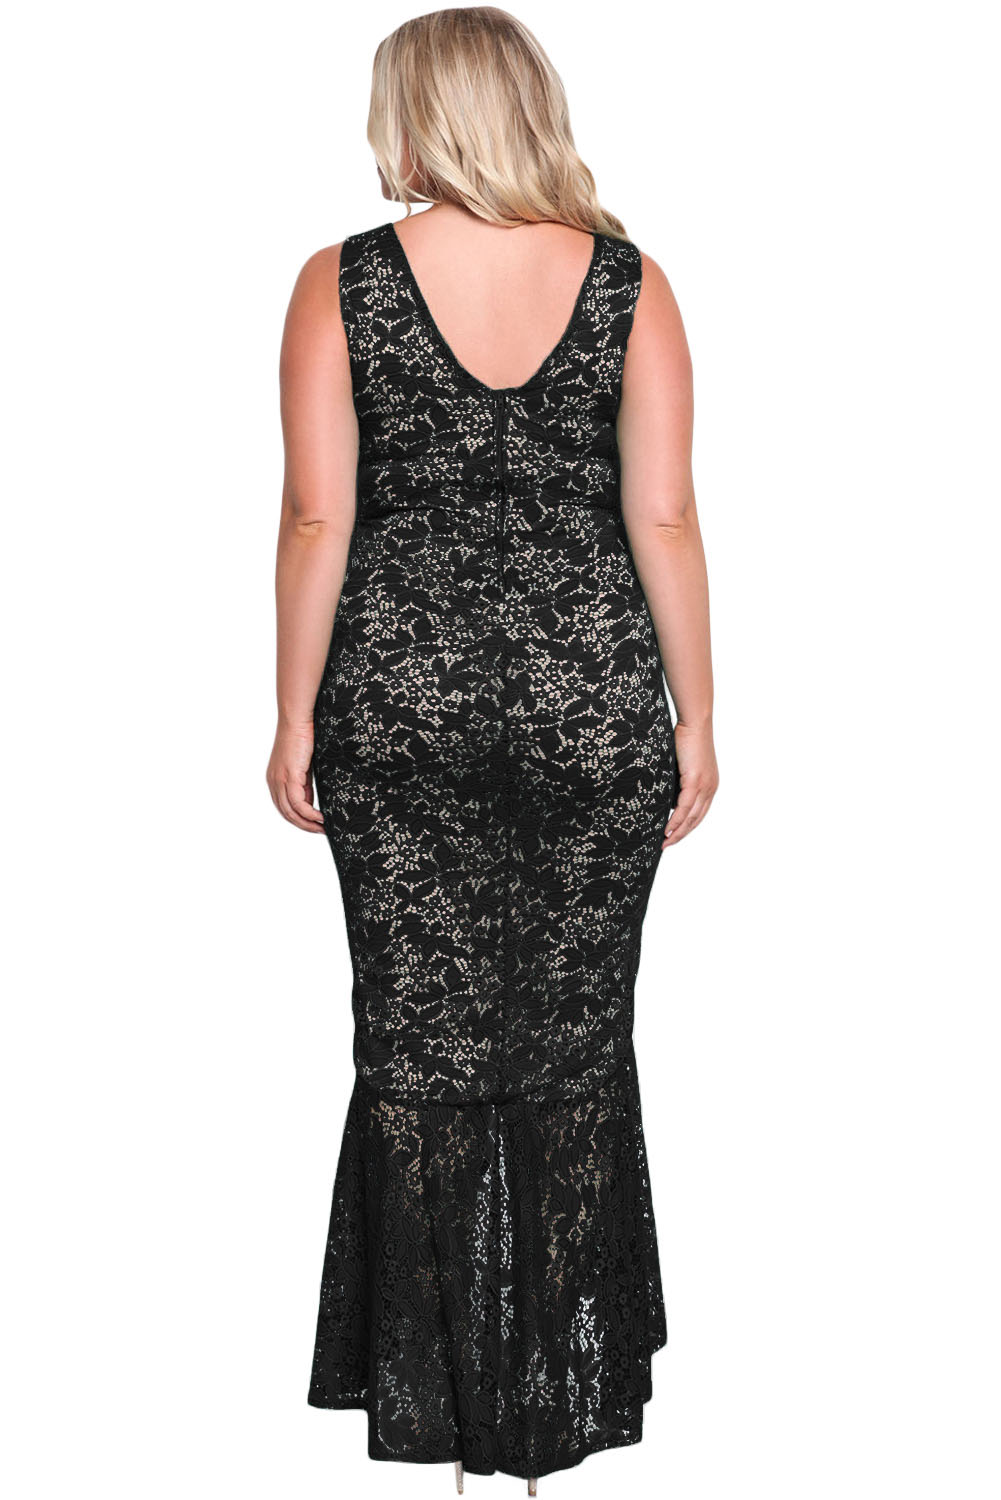 Black Plus Size Floral Lace Ruffle Mermaid Maxi Gown